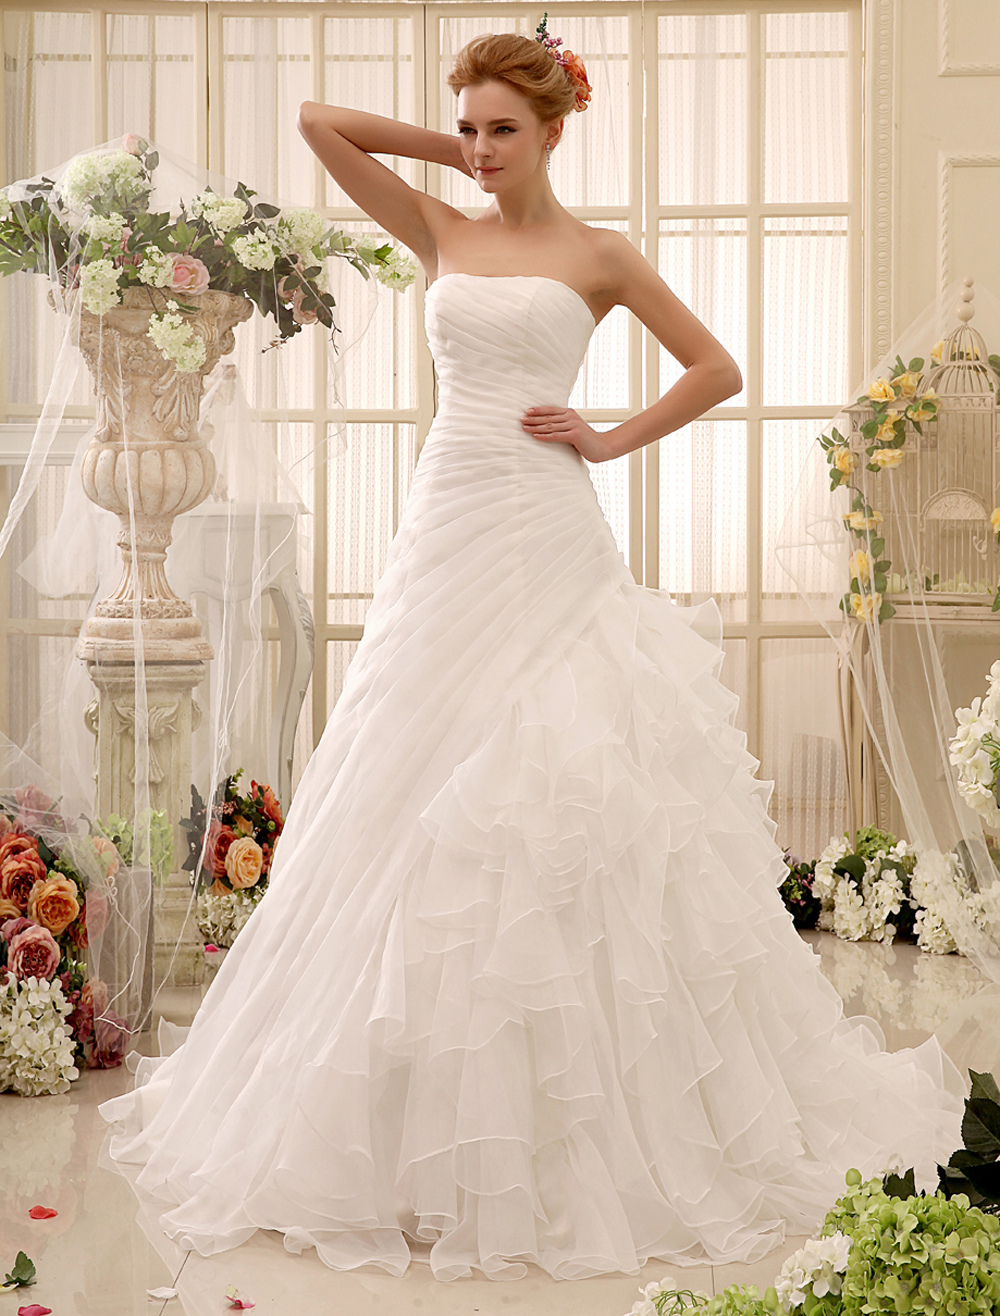 wedding dresses 2015 cheap wedding dresses discount bridal gowns. Black Bedroom Furniture Sets. Home Design Ideas